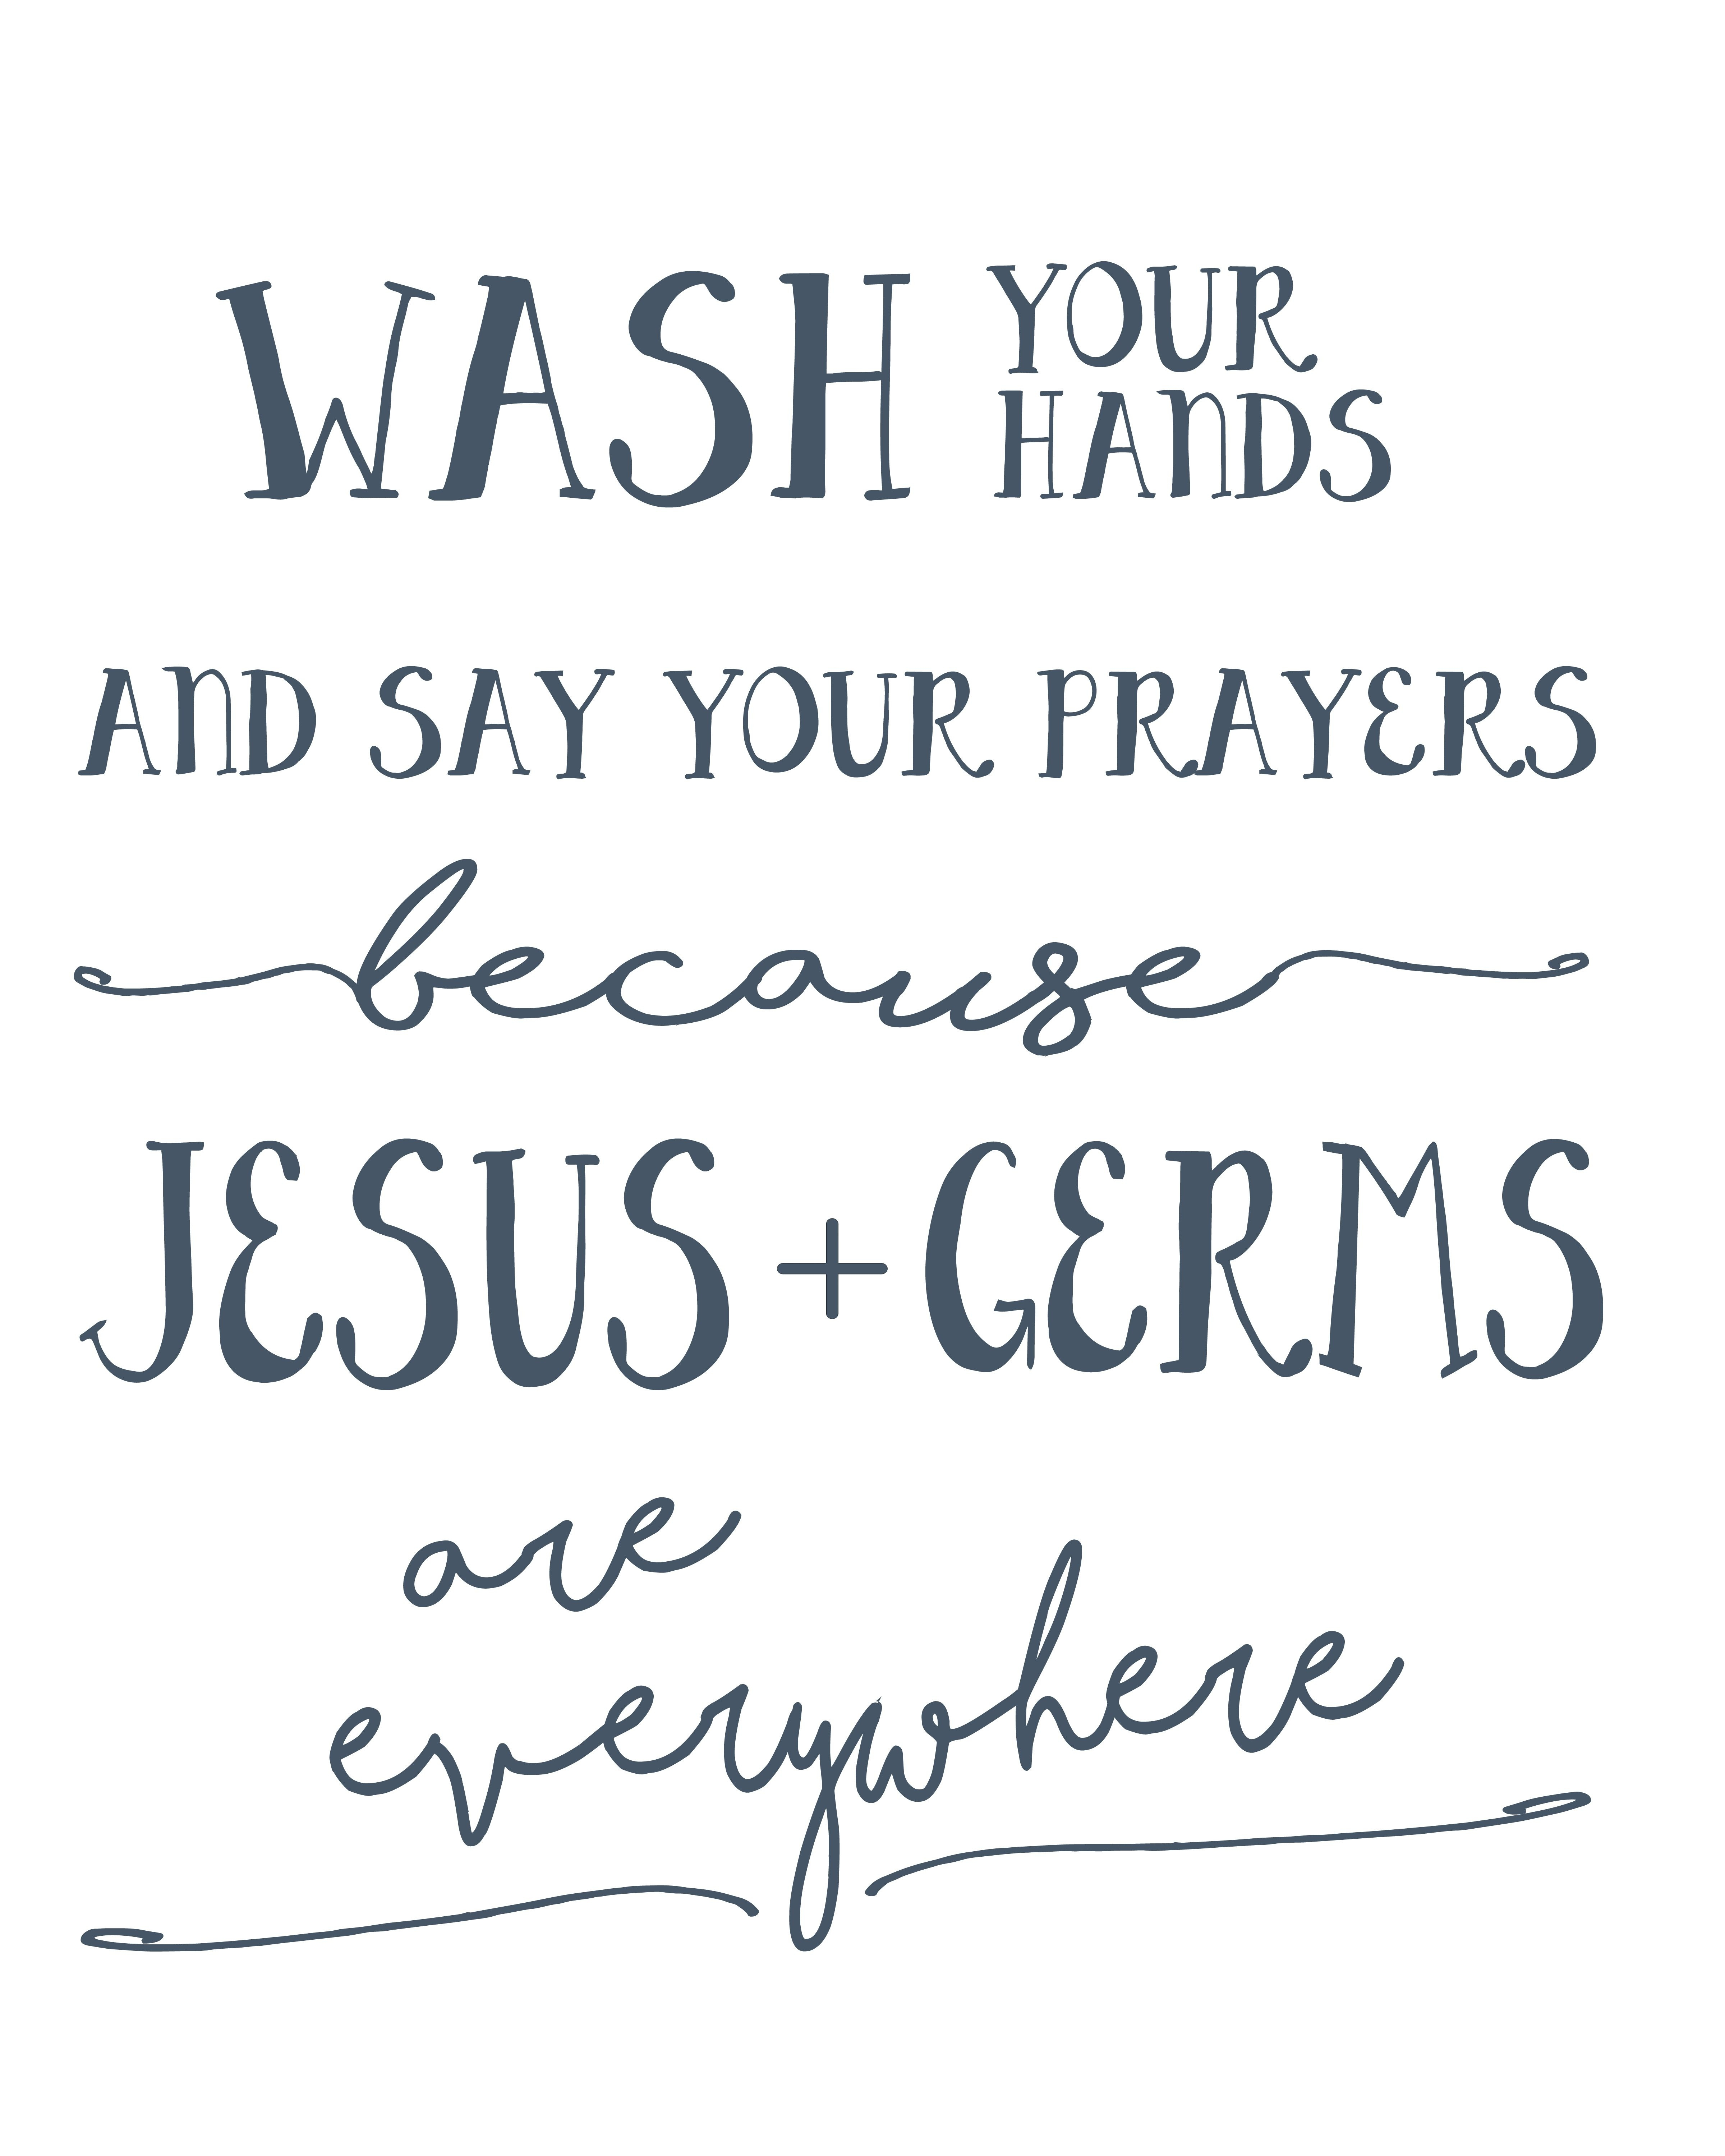 For The Girls Bathroom Wash Your Hands And Say Your Prayers Free - Free Wash Your Hands Signs Printable